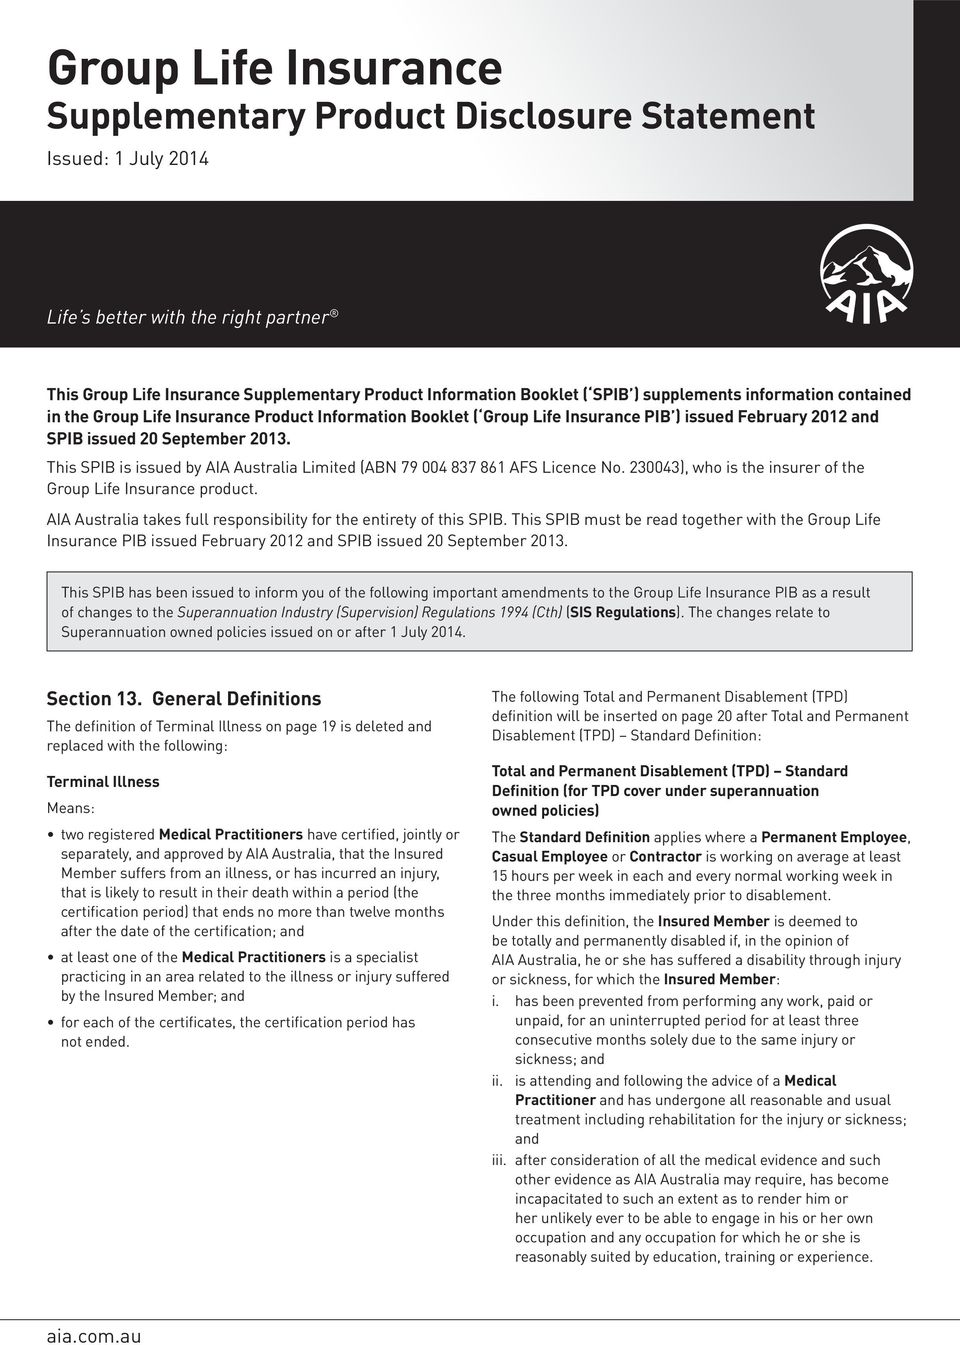 group life insurance supplementary product disclosure statement - pdf